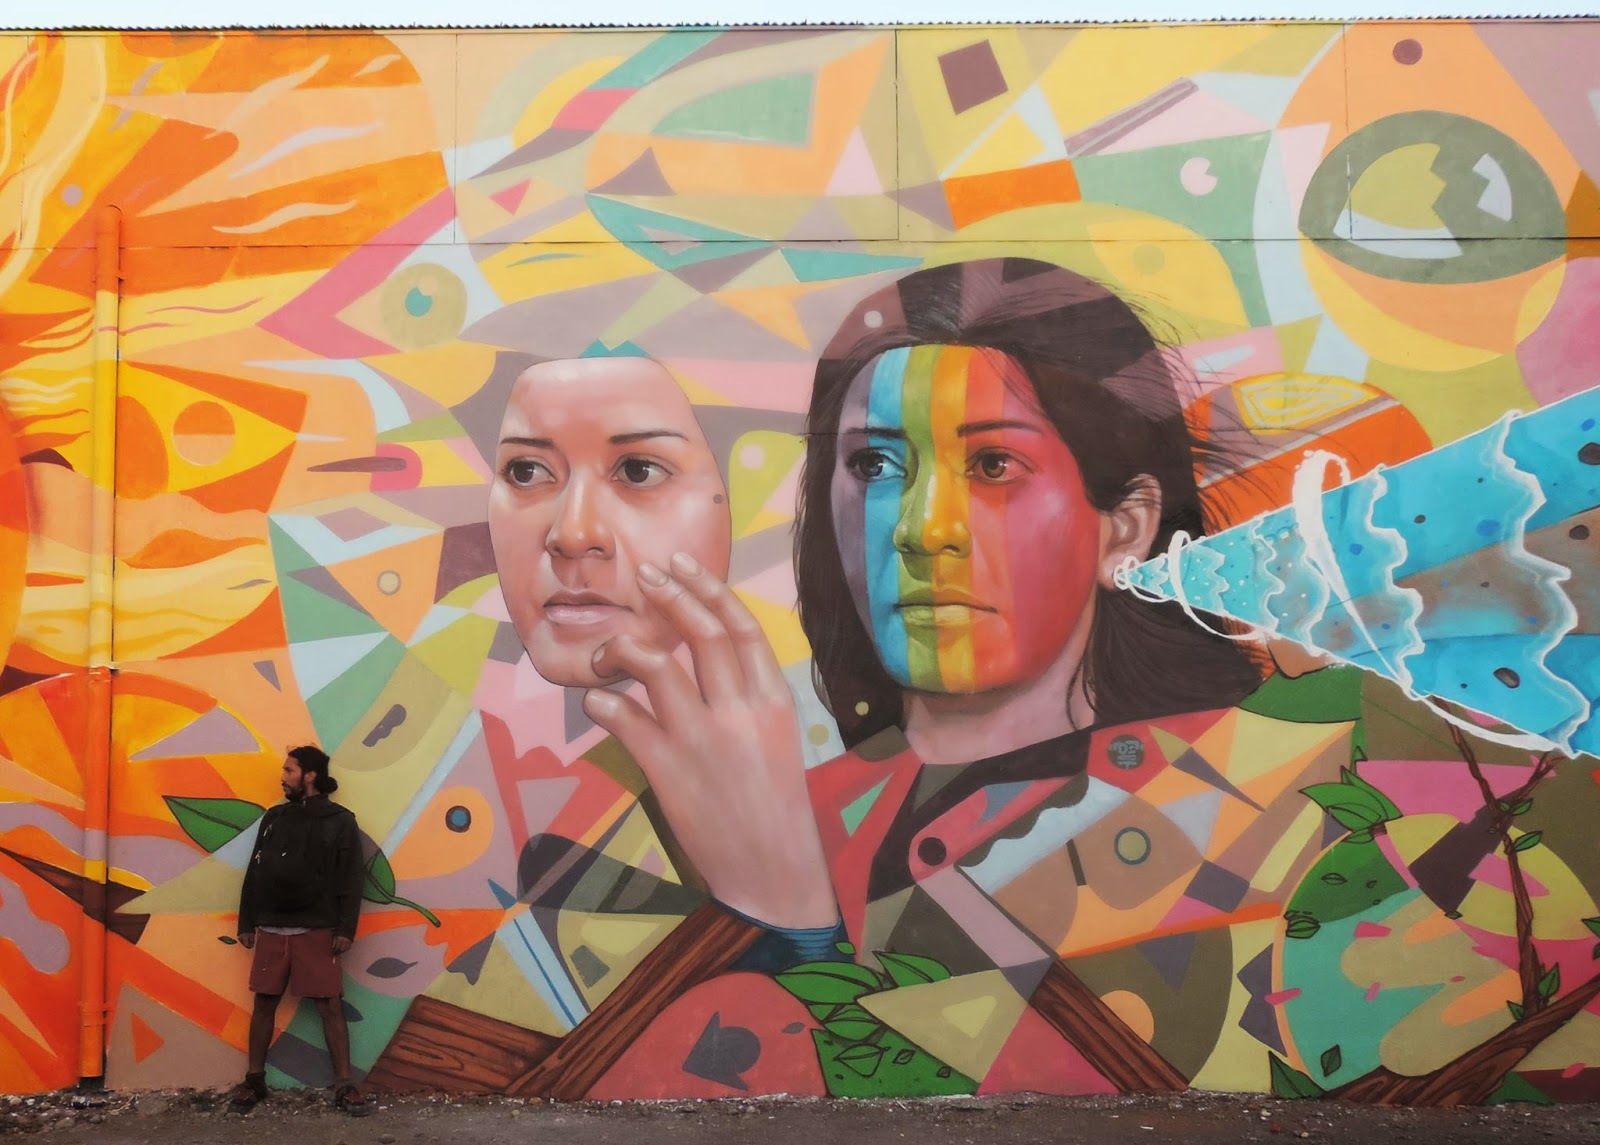 El Decertor was recently invited to paint for the festival Mixtyle which was held in the city of Temuco in Chile.